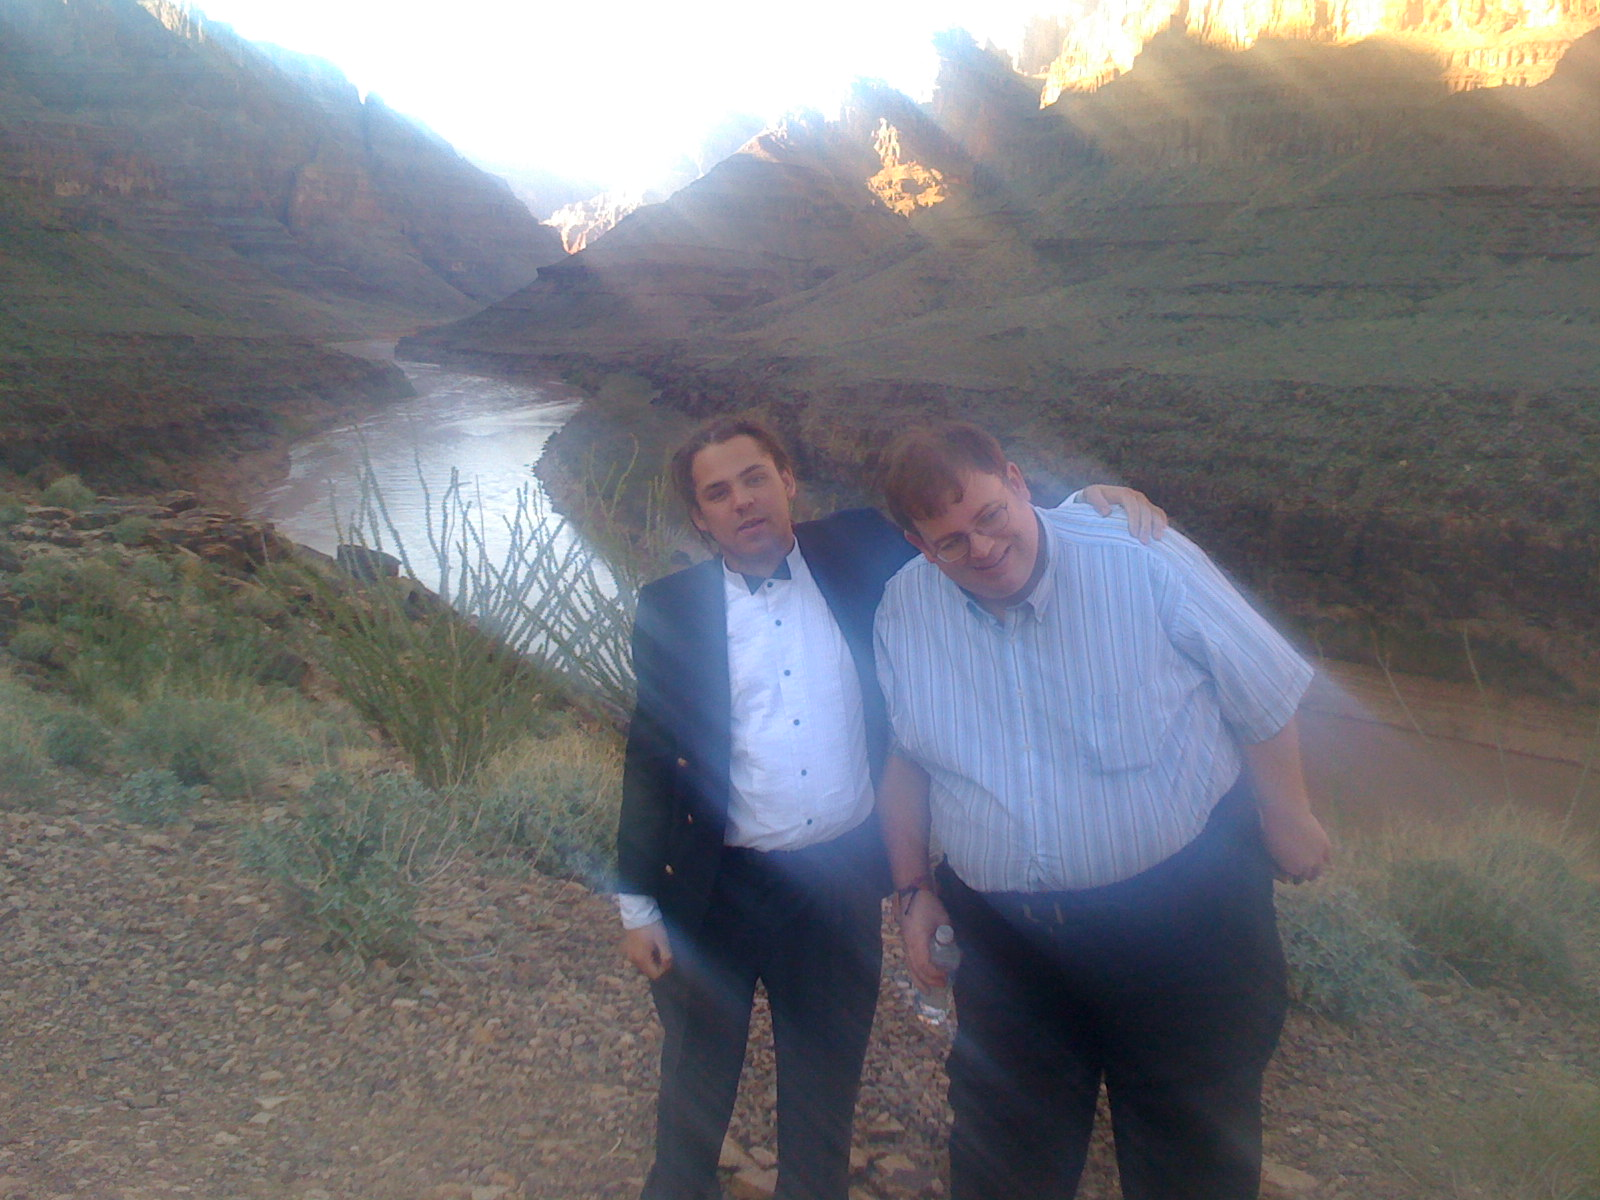 Jules (bowtie) and Paul check out the Grand Canyon